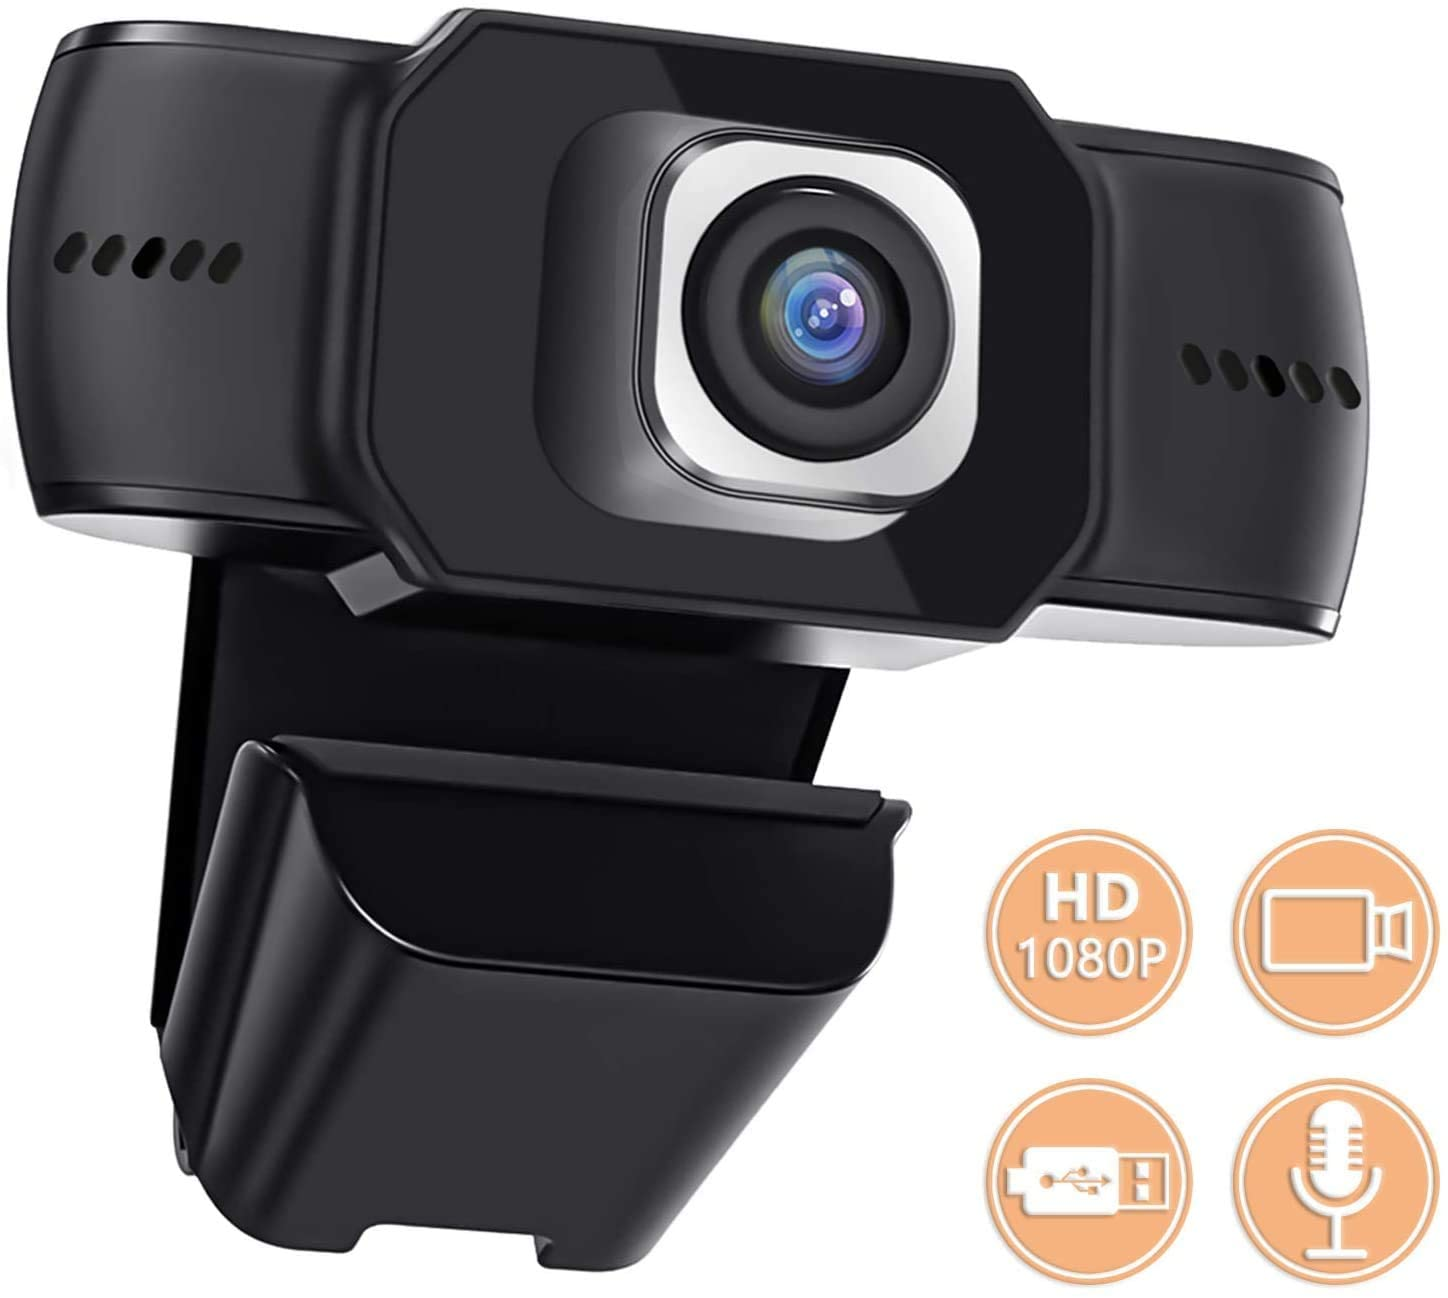 Anviker Webcam 1080P Full HD Skype Camera, Web Cam with Microphone/Speaker, Video Calling and Recording for PC/Mac Laptop/Desktop, Plug and Play USB Camera for YouTube/Skype/Potplayer Live Streaming